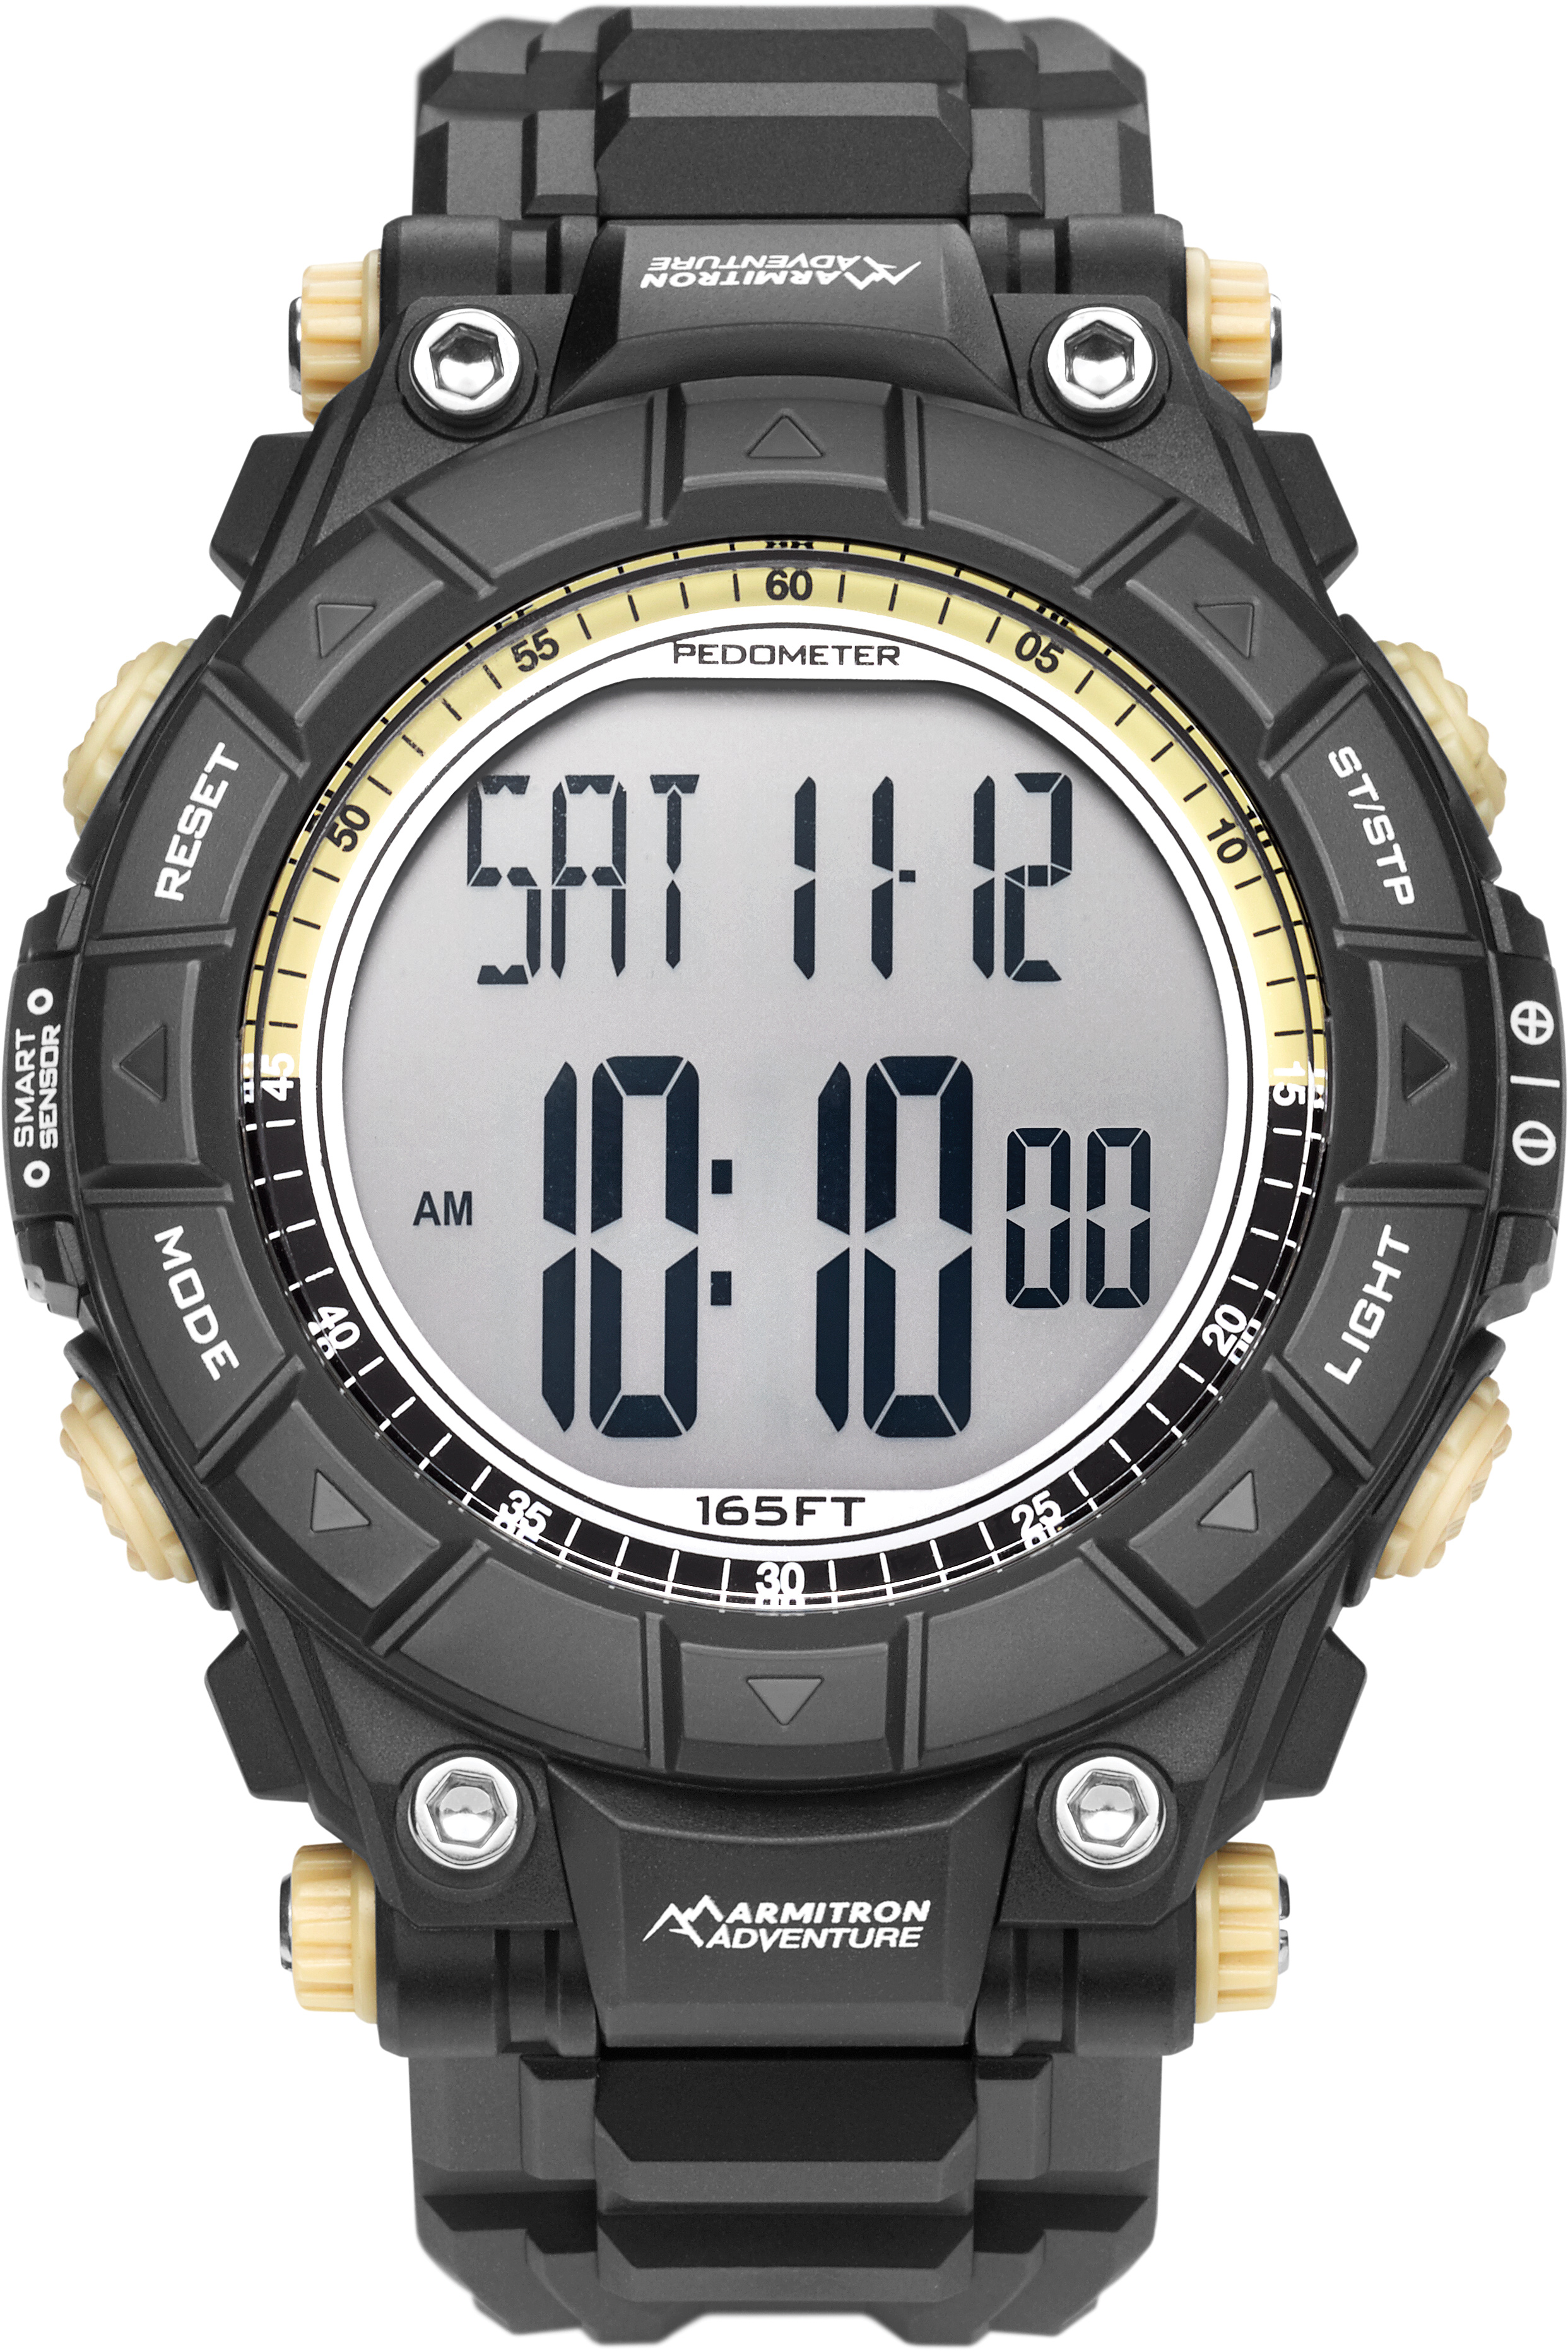 1cebbd4d8 ARMITRON ADVENTURE Digital Watch With Black Resin Band- 49mm | w/ Free S&H